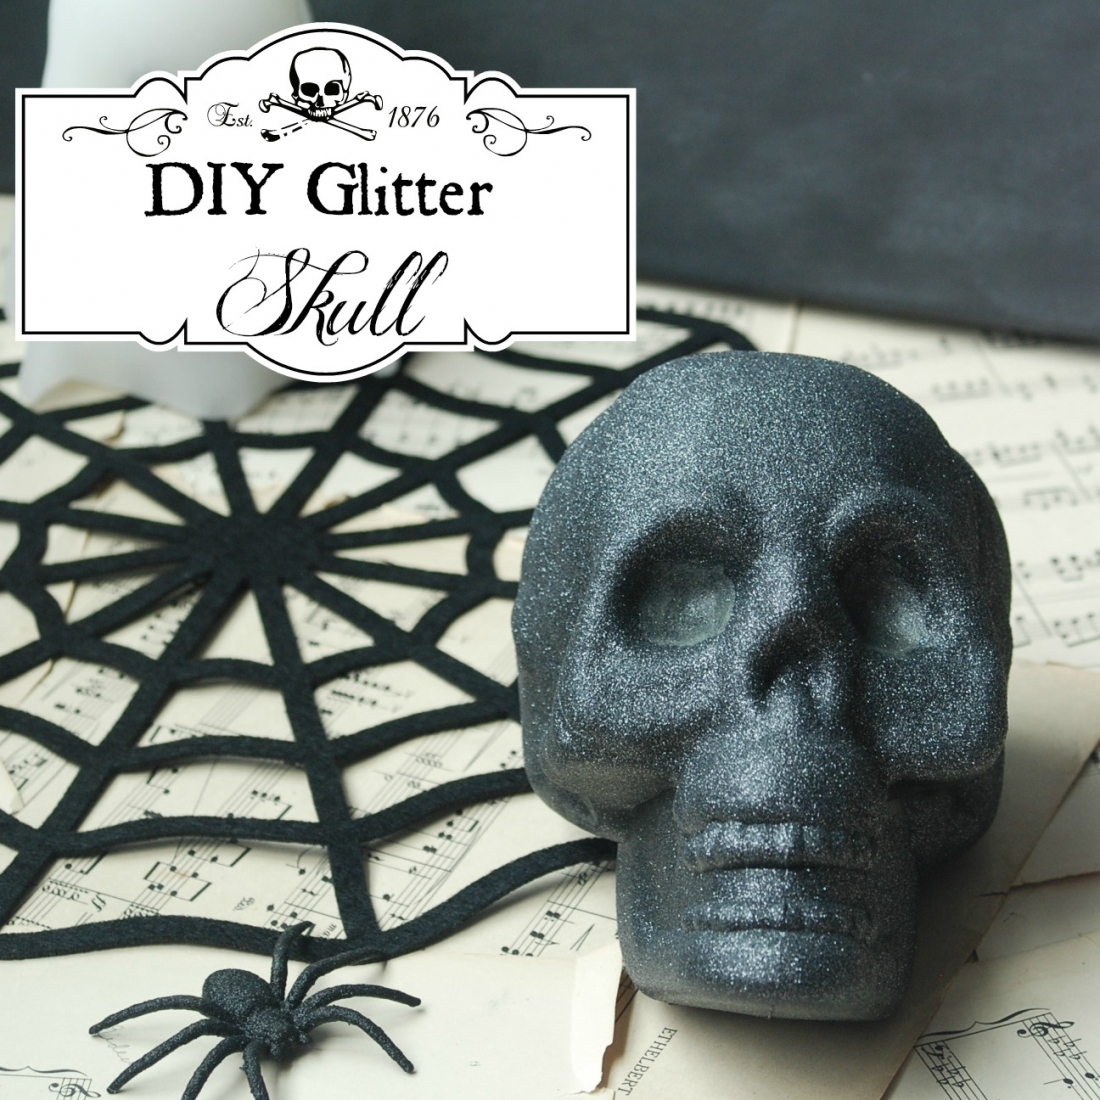 Transform a dollar store skull into a cool, creepy, glittery decoration